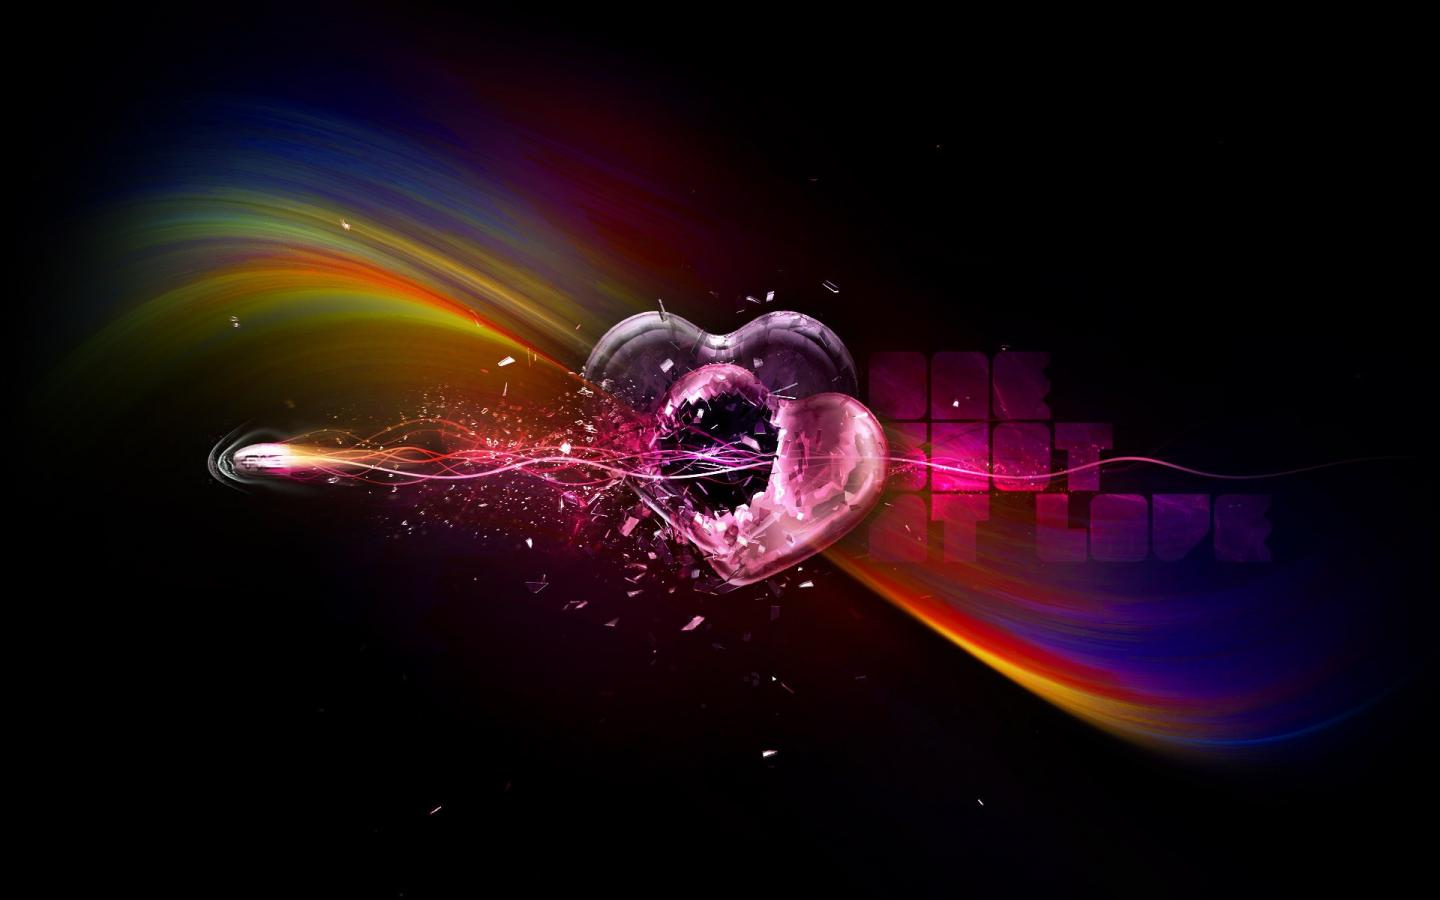 broken_heart_by_bullet-1440x900